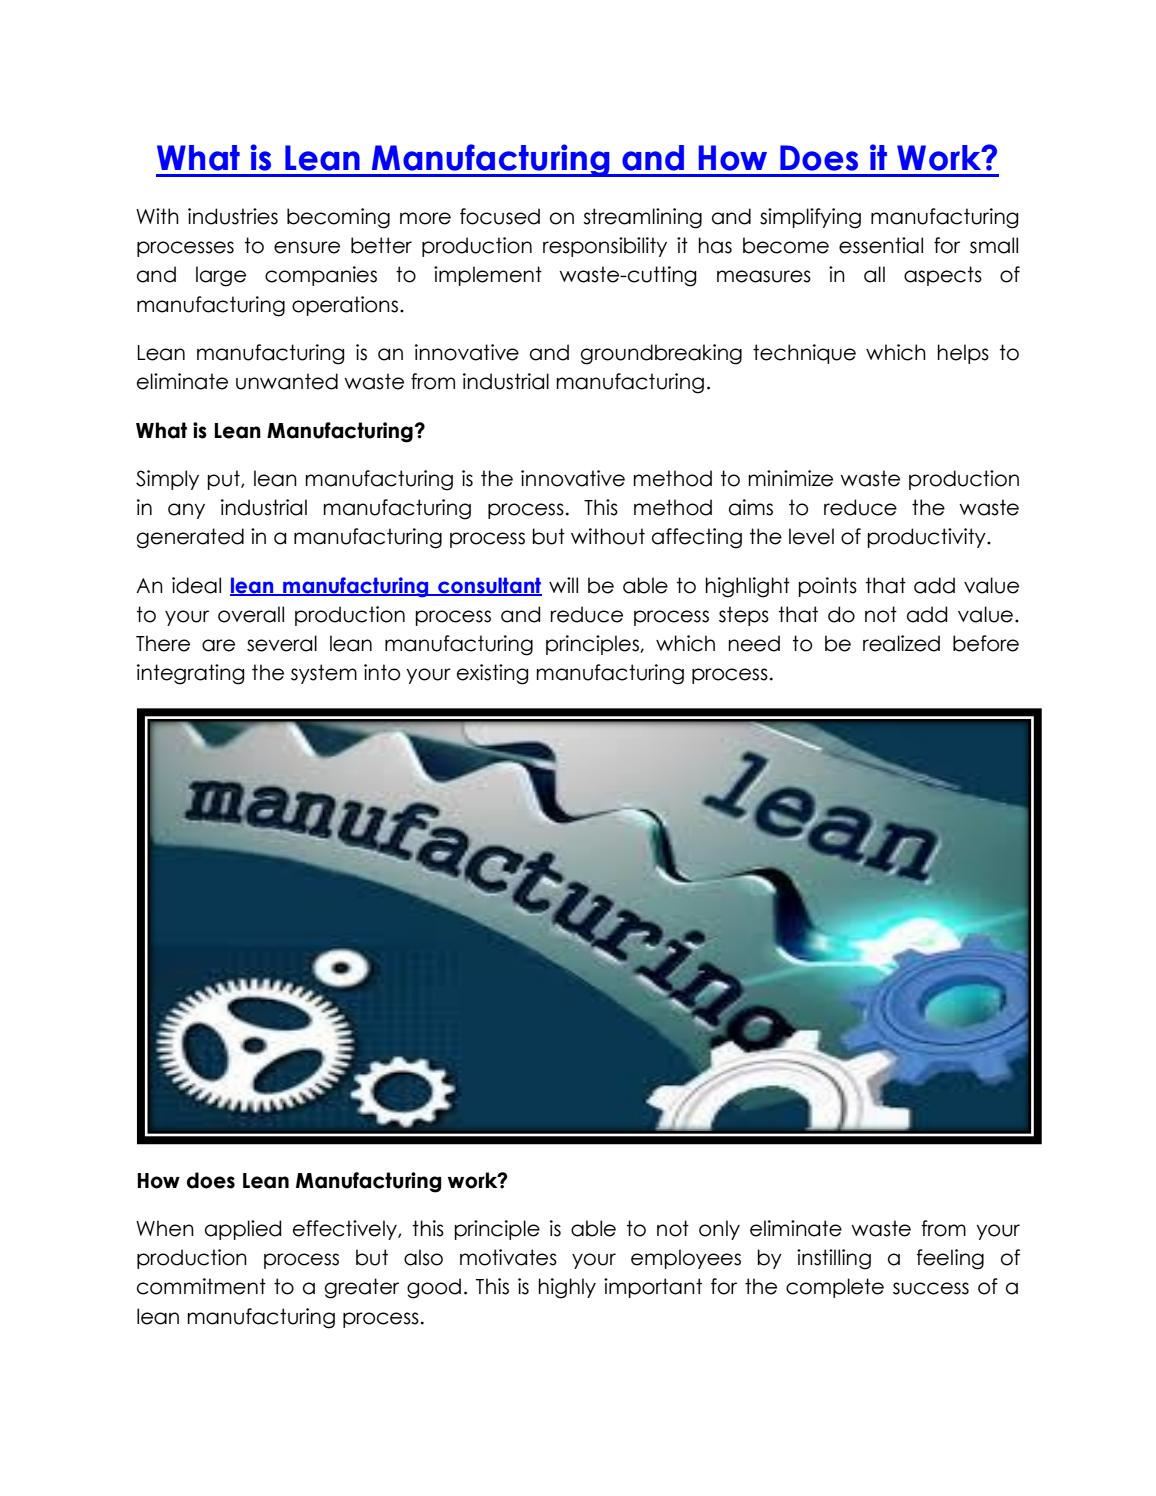 What is lean manufacturing and how does it work by Ribcon